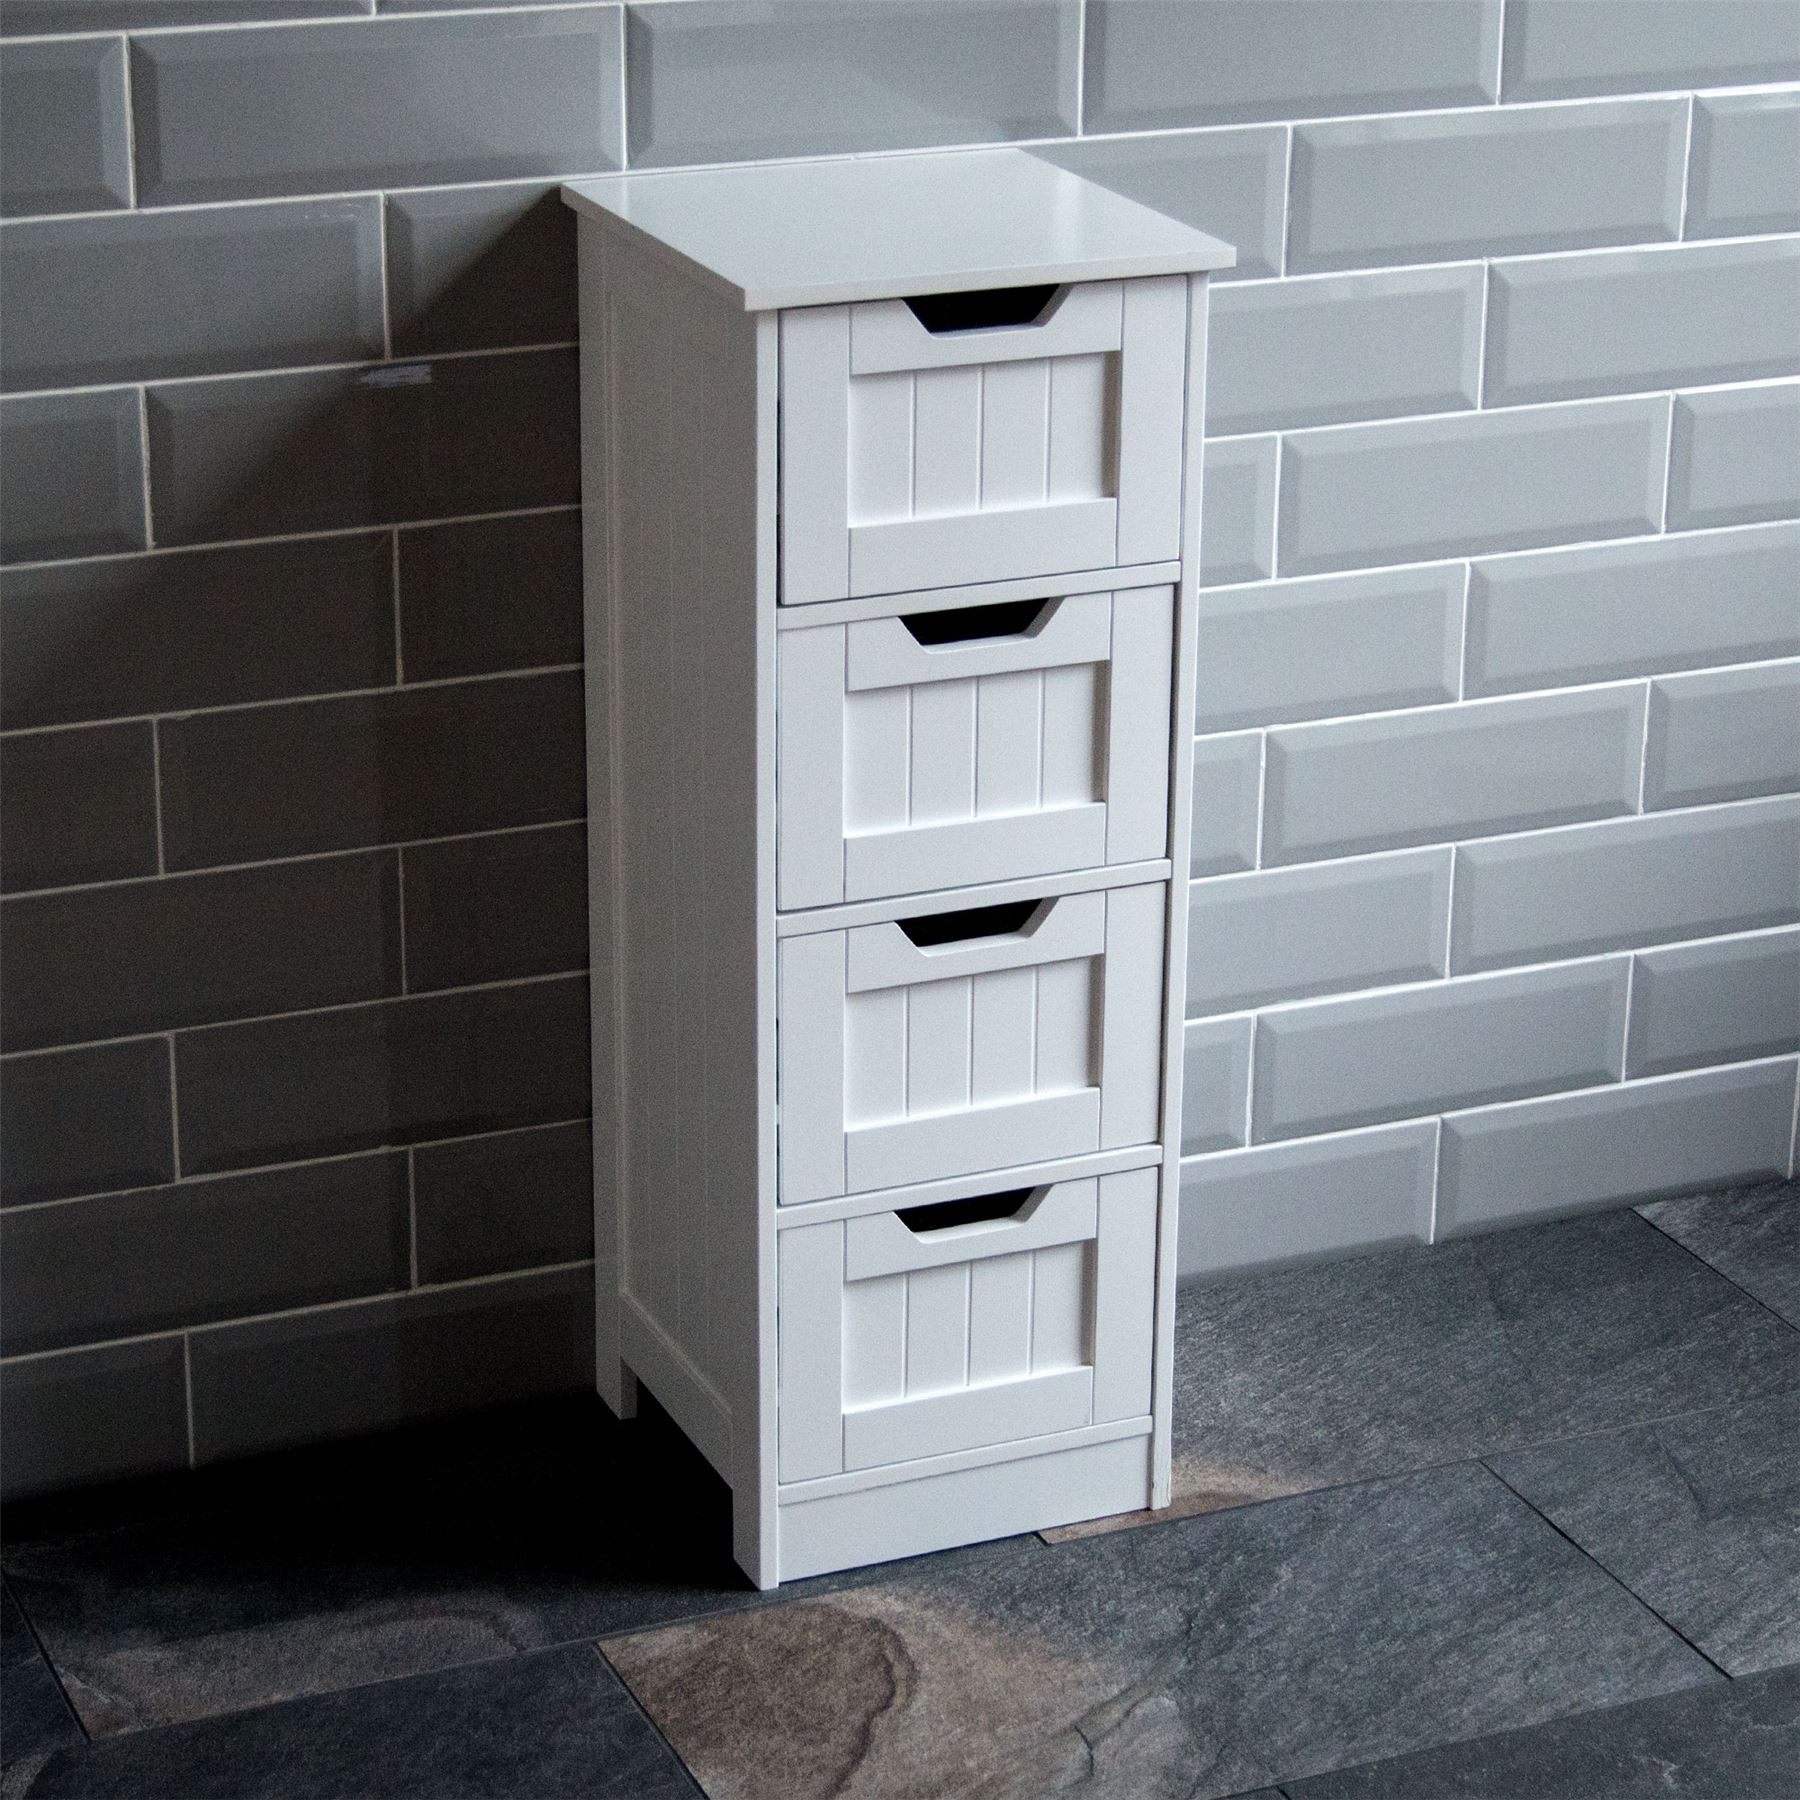 Priano-Bathroom-Cabinet-Door-Drawer-Wall-Mounted-Storage-Free-Standing-Units